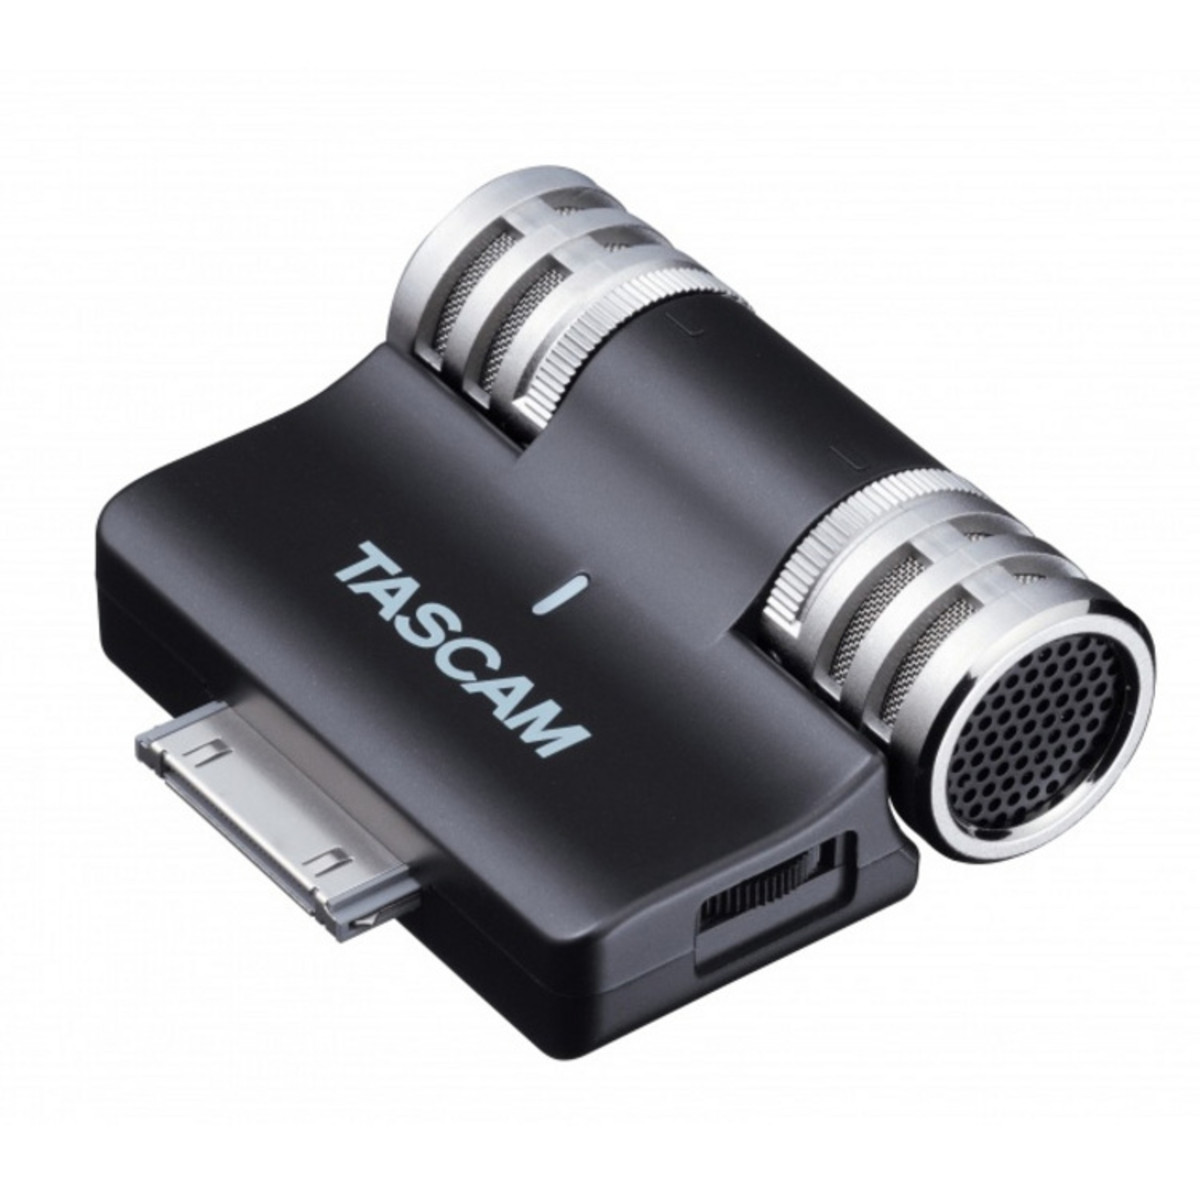 tascam im2 stereo condenser microphone for iphone ipad at. Black Bedroom Furniture Sets. Home Design Ideas